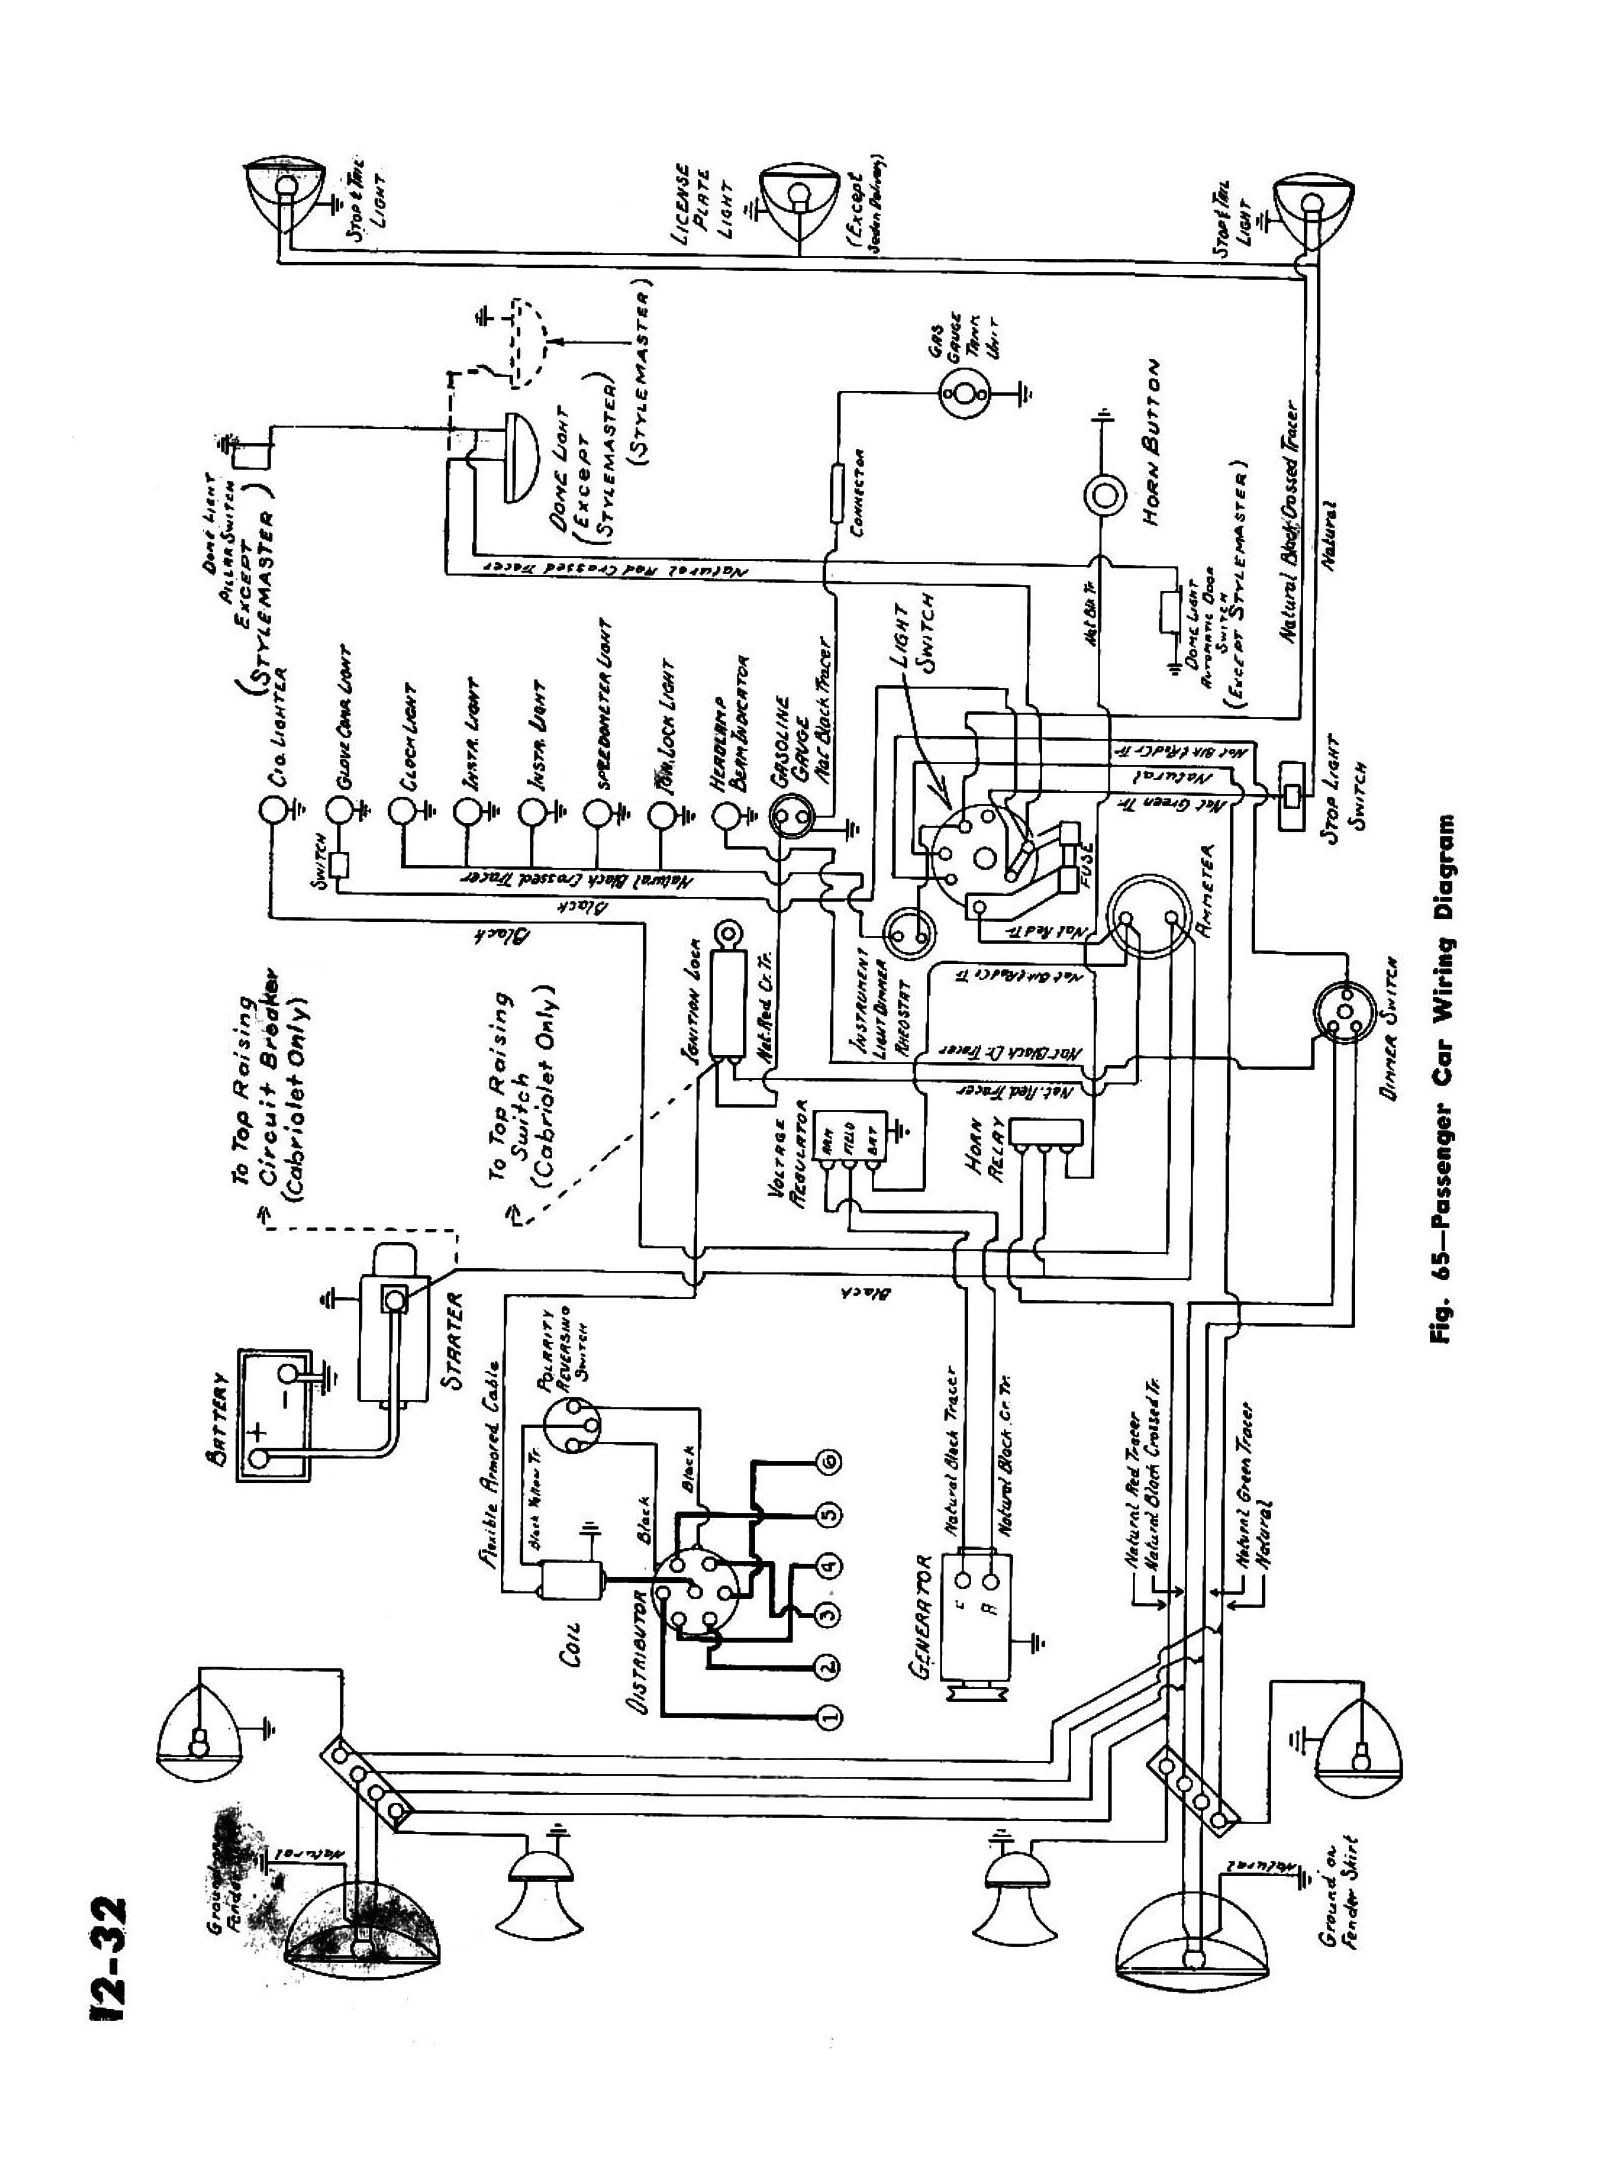 wiring diagram symbol legend with Industrial Electrical Schematics on Industrial Electrical Schematics further Engine Car Symbols Battery as well draftingmanuals tpub   14040 img 14040 159 1 together with Circuits Circuit Symbols likewise Electrical Blueprint Legend.